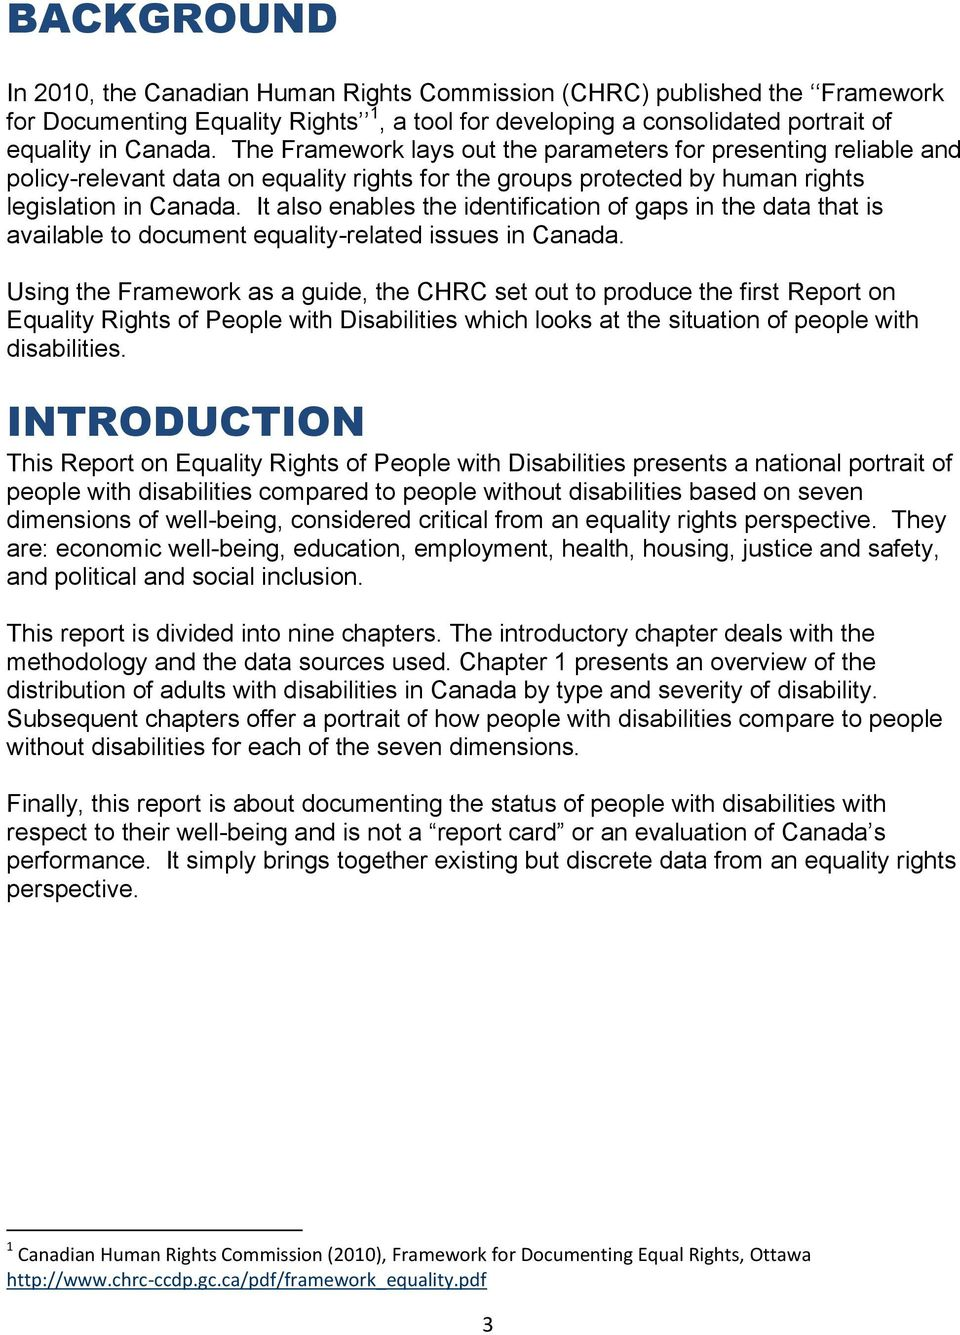 It also enables the identification of gaps in the data that is available to document equality-related issues in Canada.